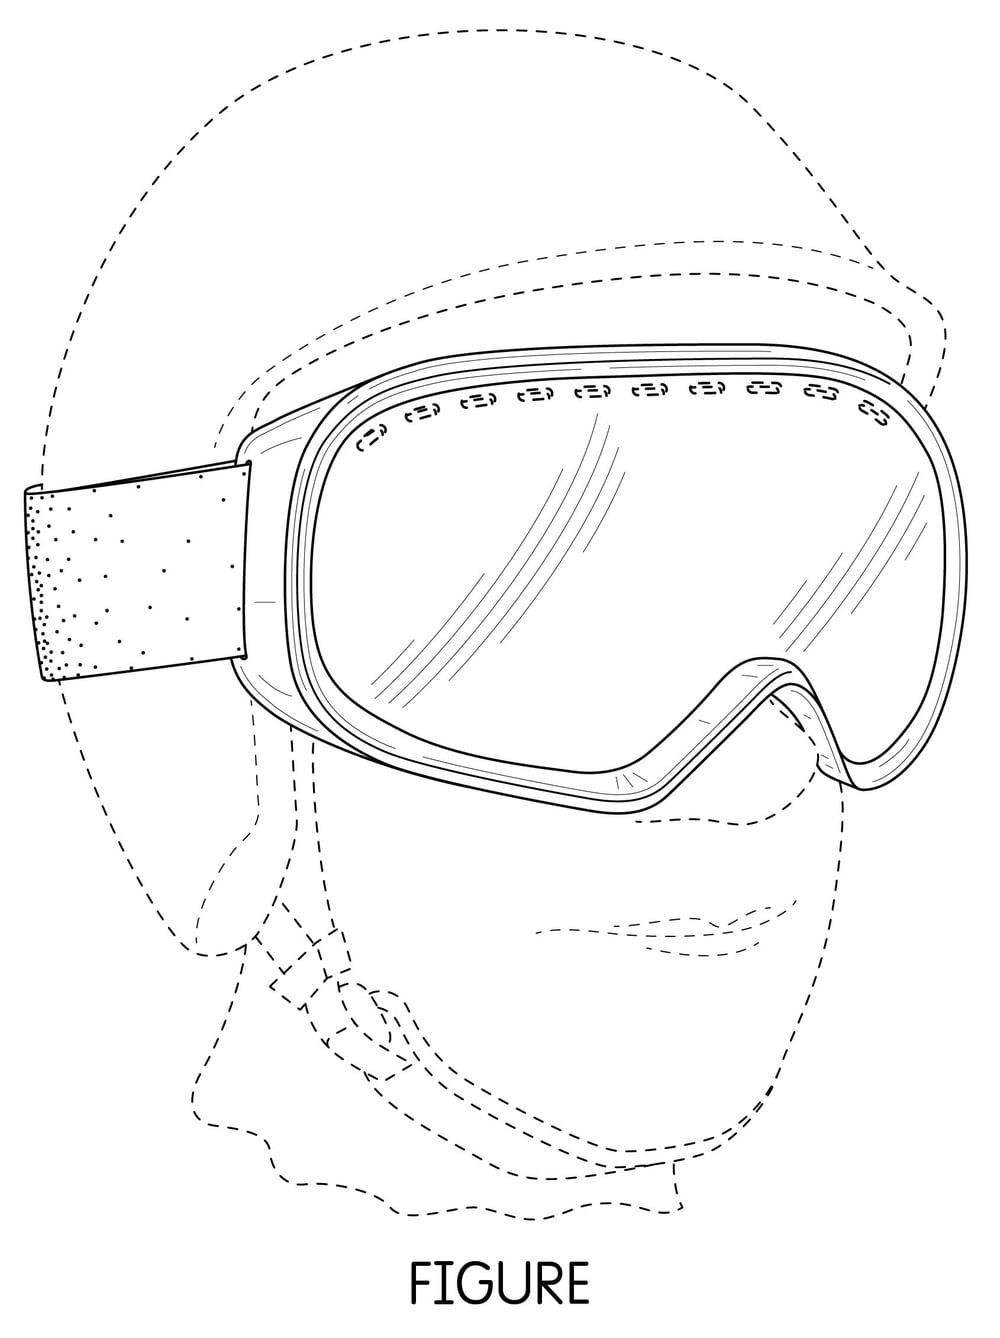 Sample Patent Illustration For Goggles.